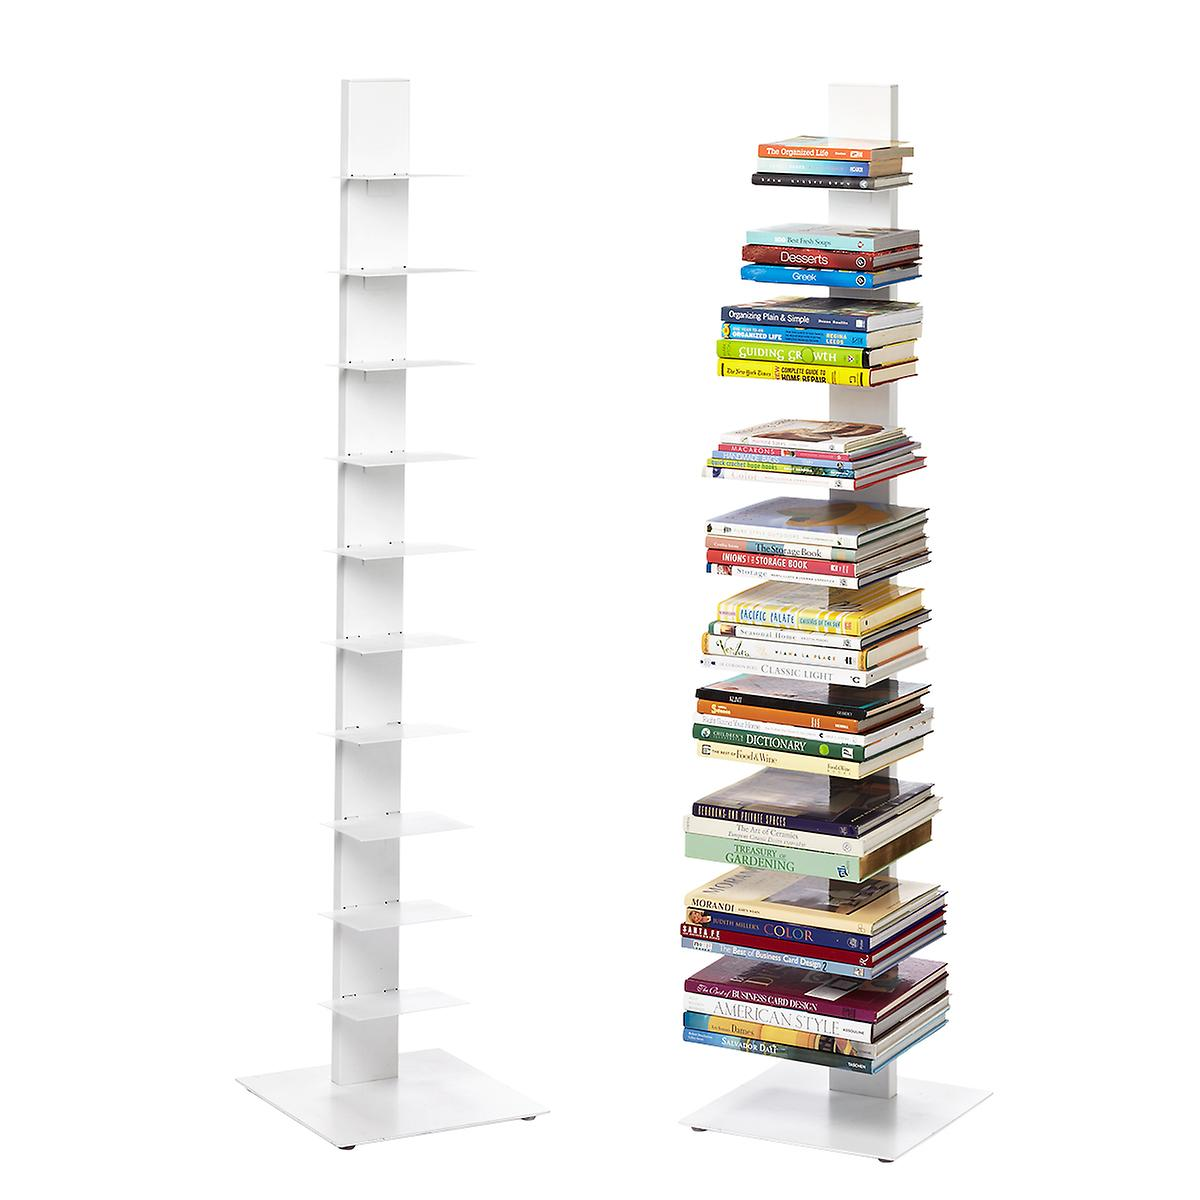 white floating bookshelf the container strong shelves for books sapien bookcase small spaces dorm shelf ikea cube storage unit dunelm ladder real wood mantel hanging dvd player